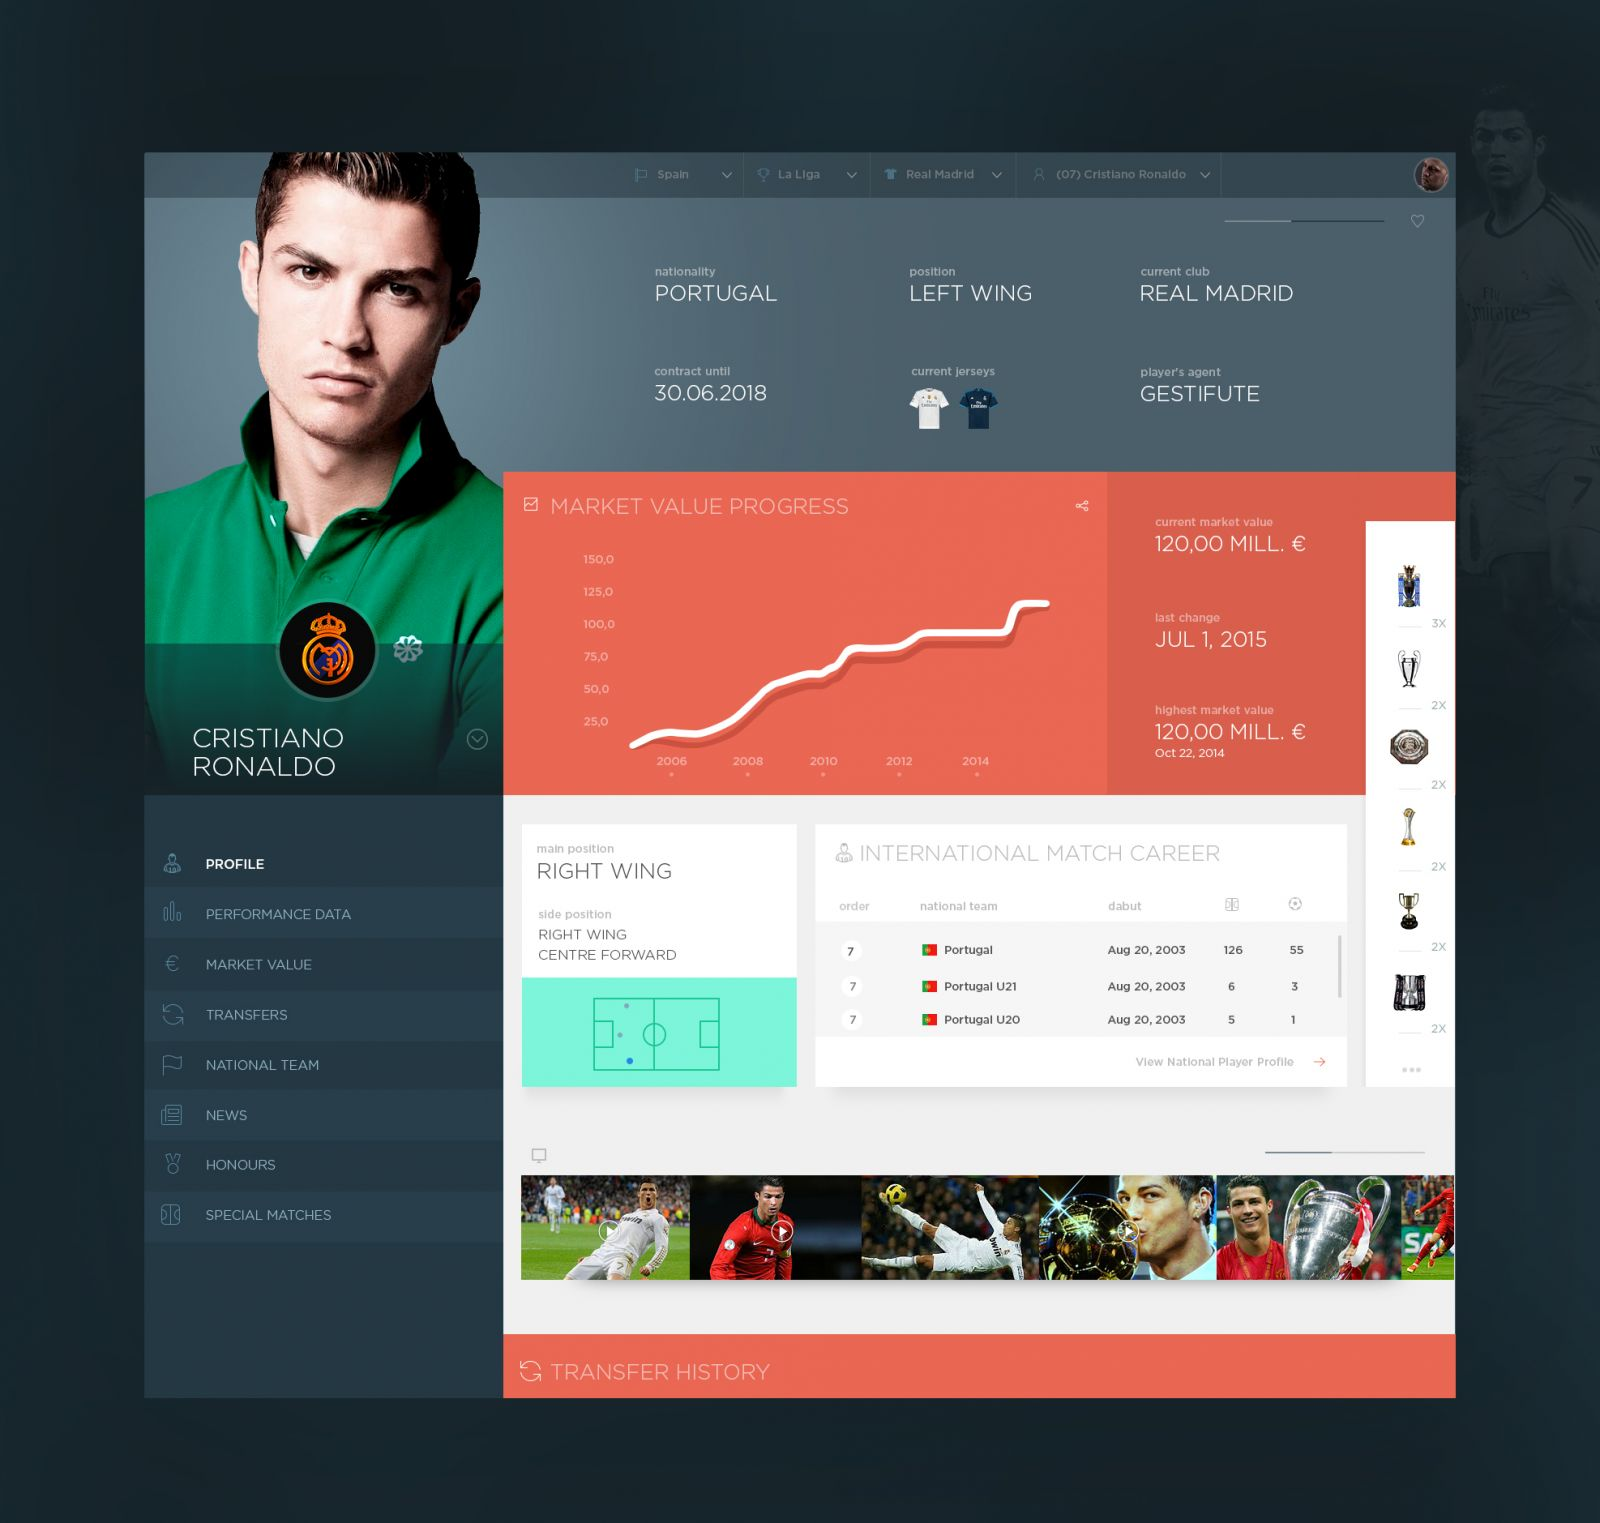 Dribbble - playerprofile_ronaldo.jpg by Vivek